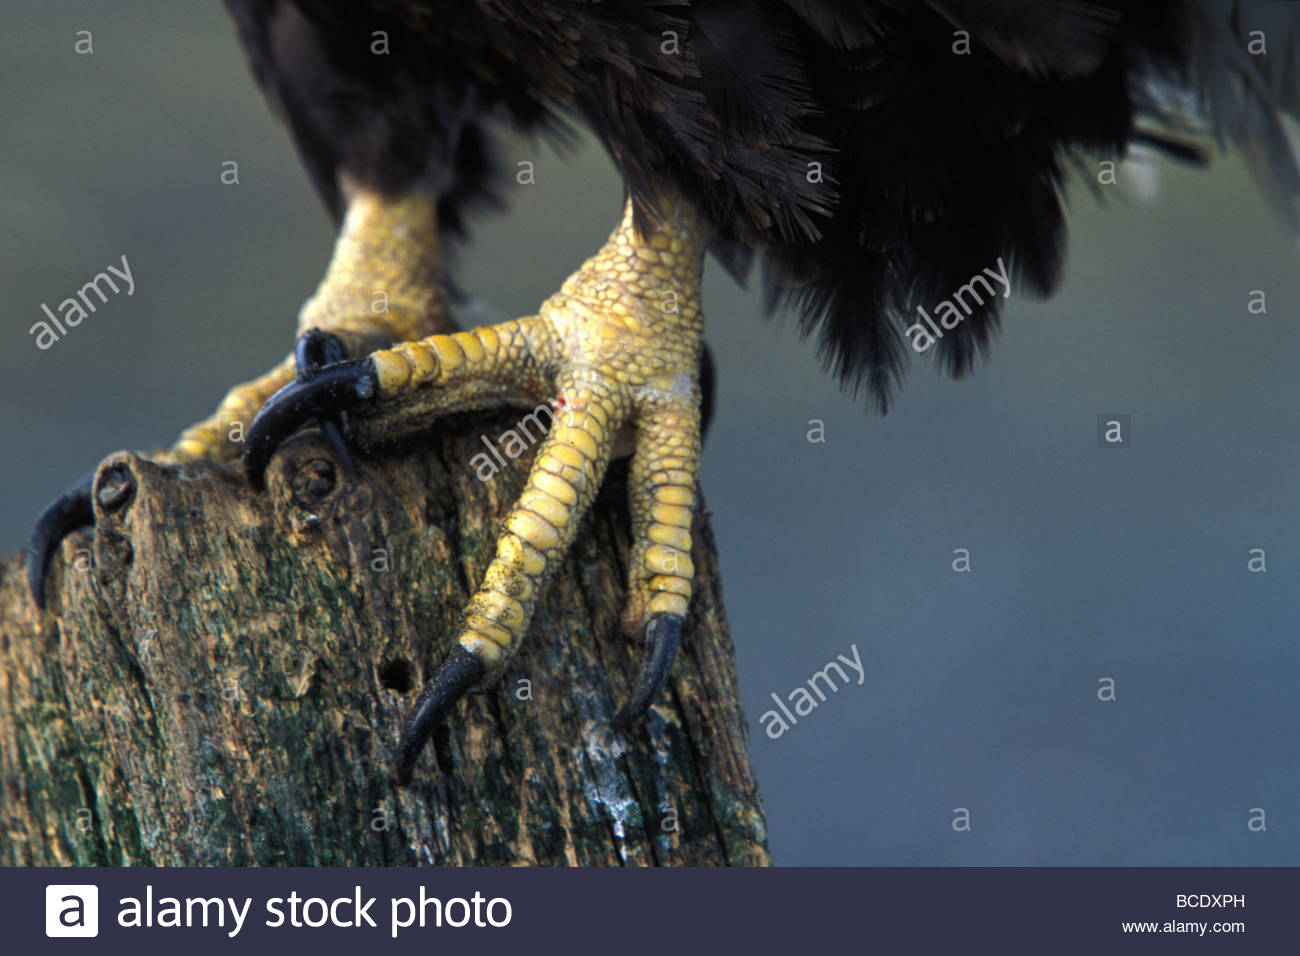 American Bald eagle talons. - Stock Image